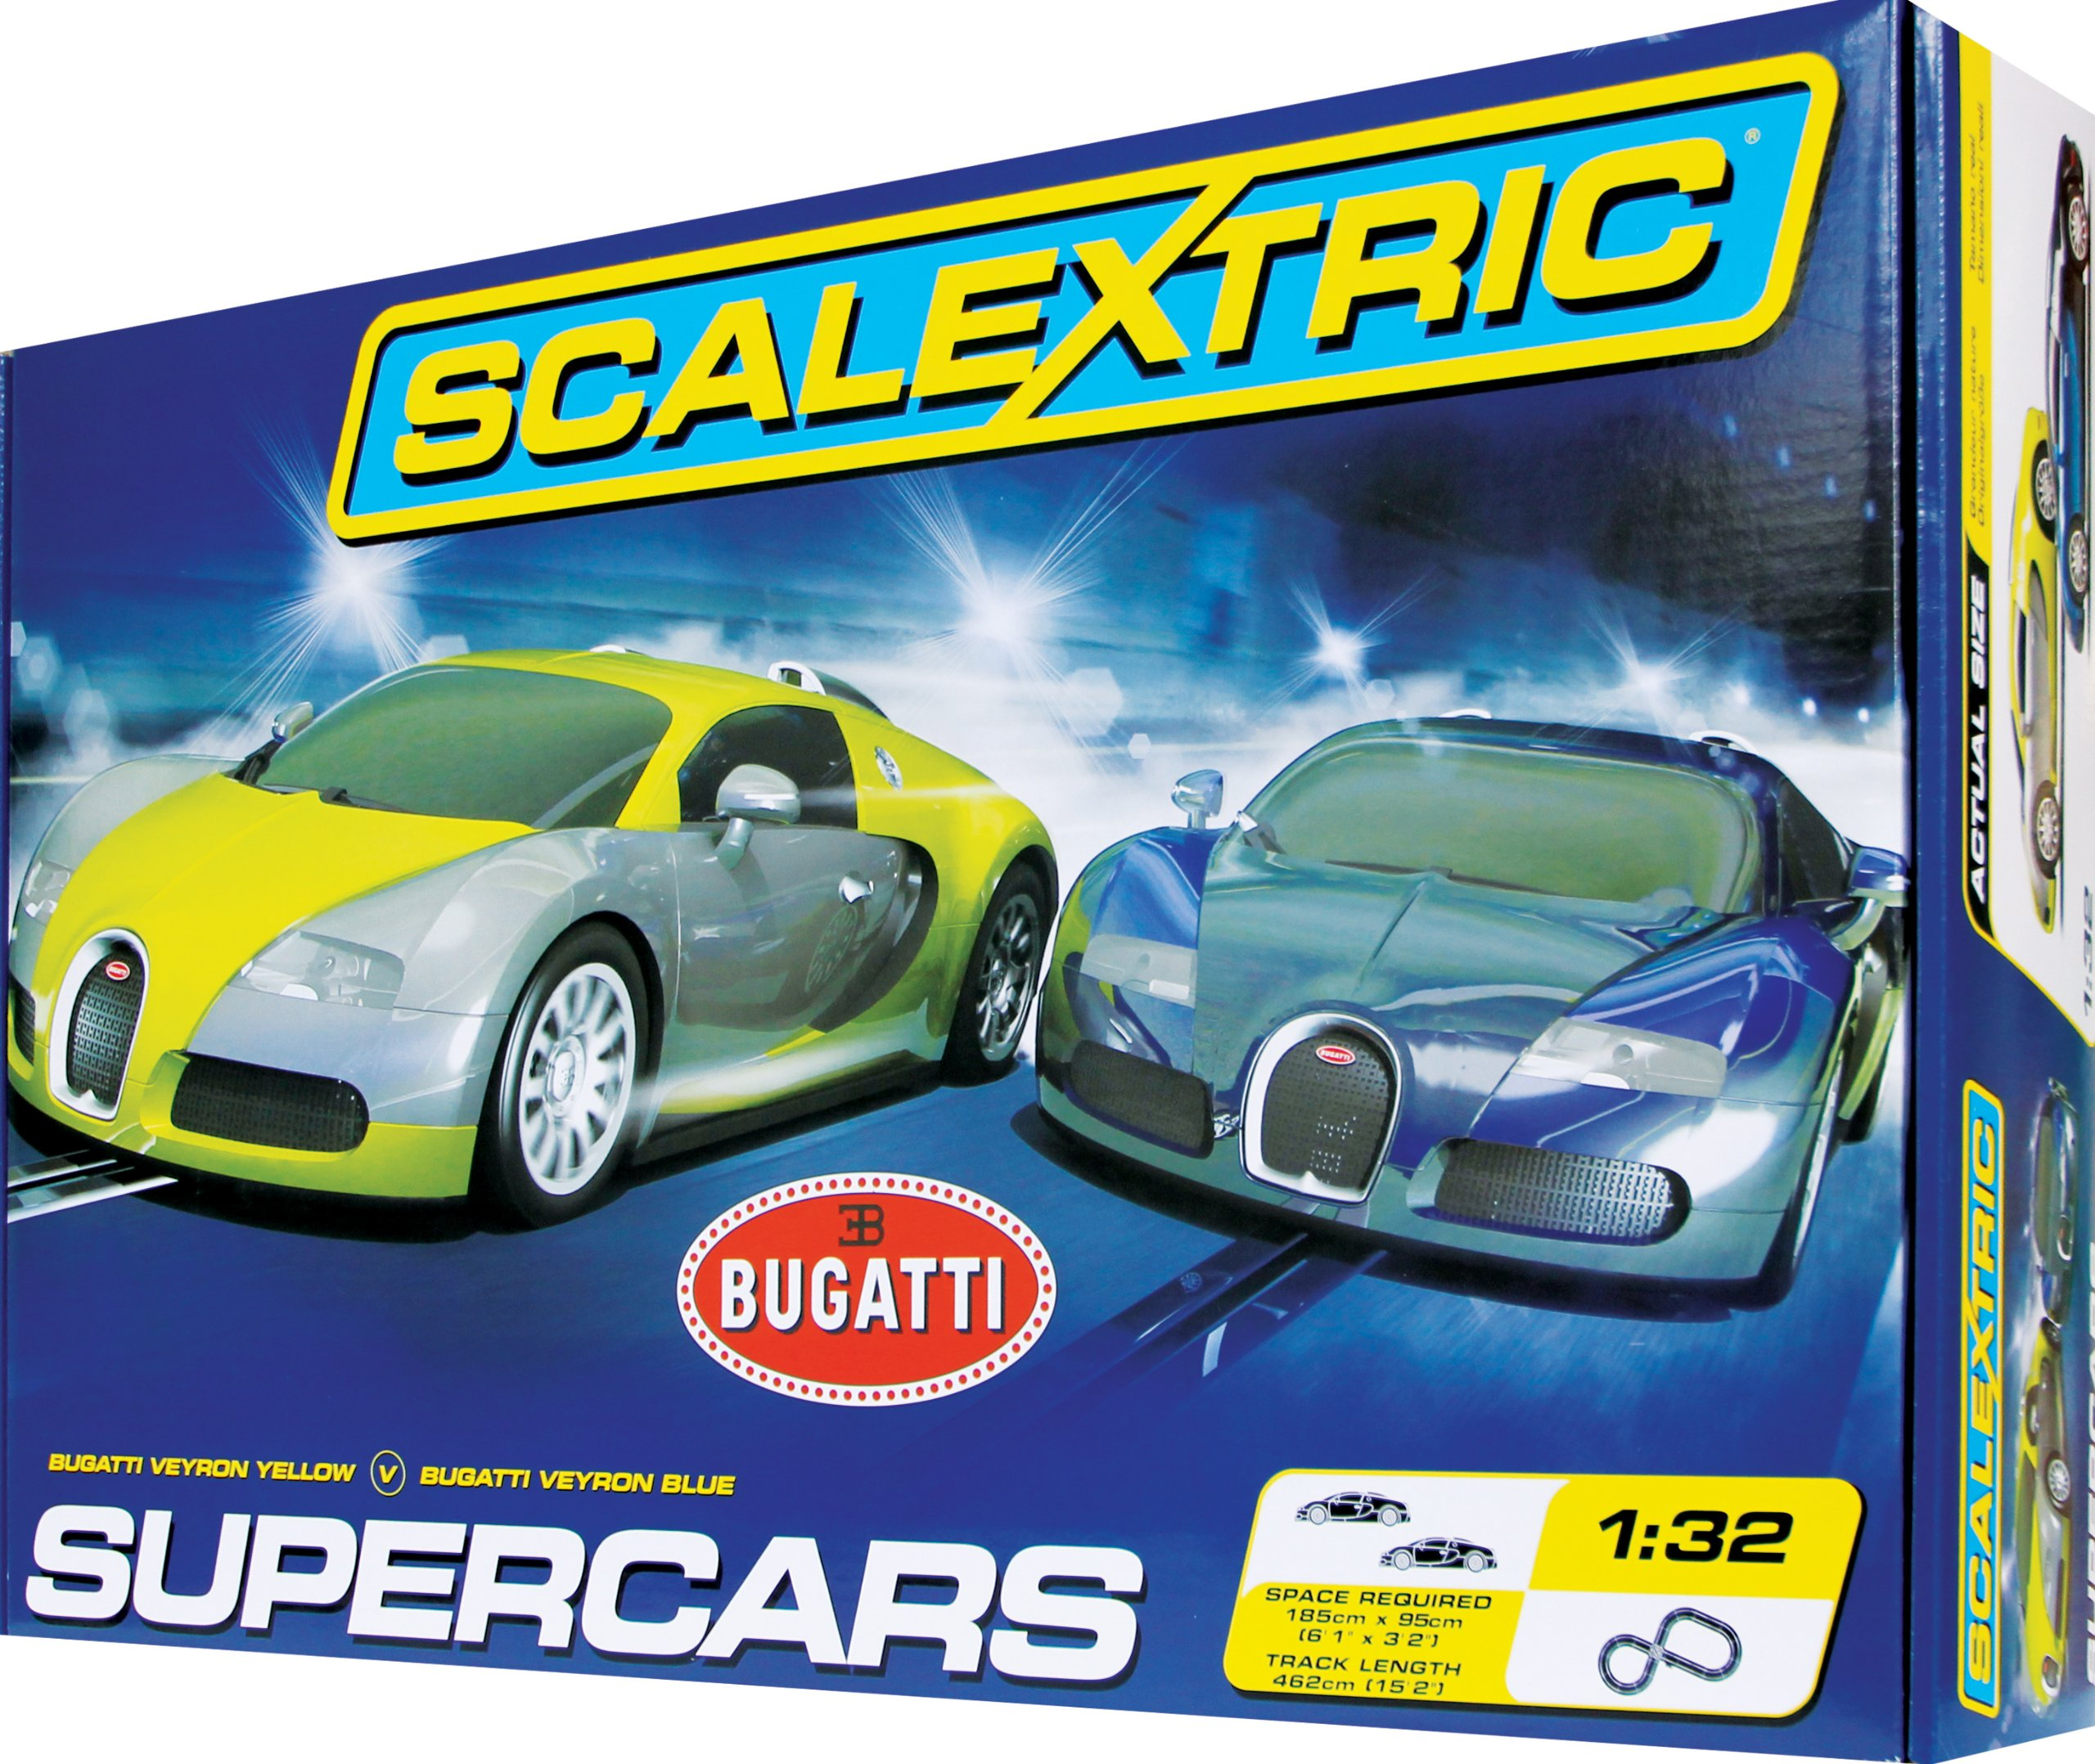 Scalextric 1:32 Supercar Race Set (C1297T) by Scalextric (Image #4)